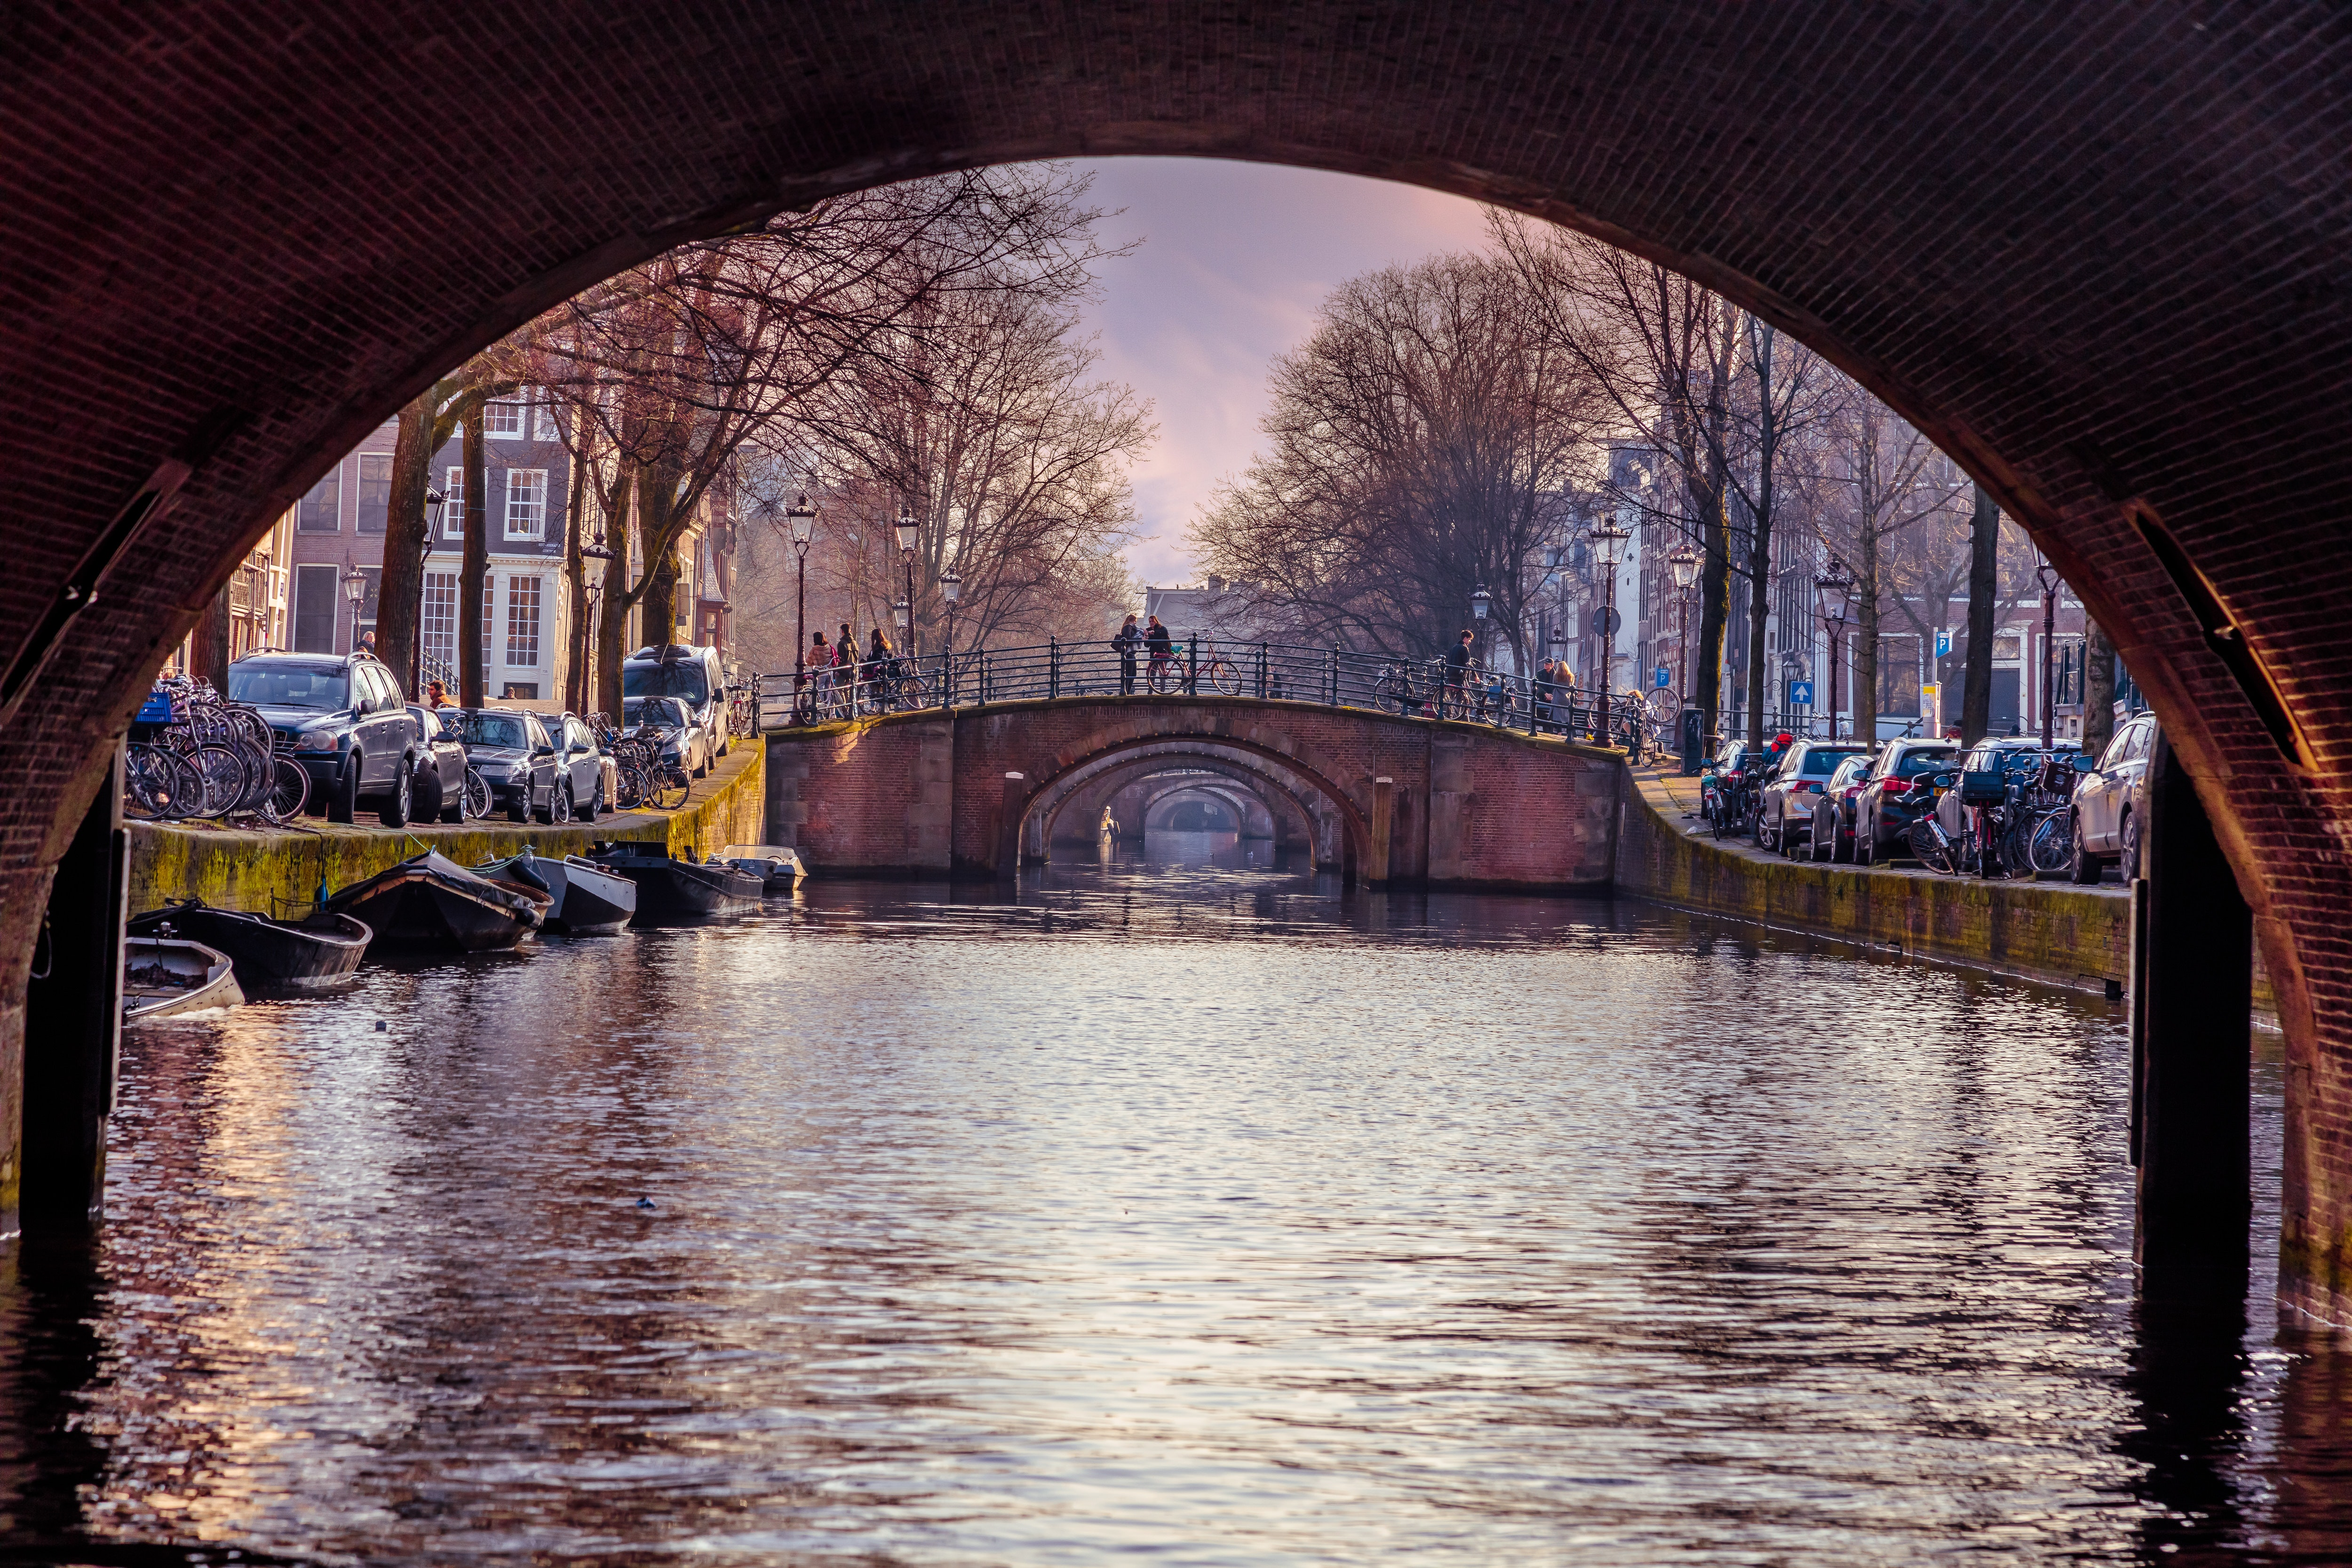 A picture of a canal taken beneath a bridge in Amsterdam.